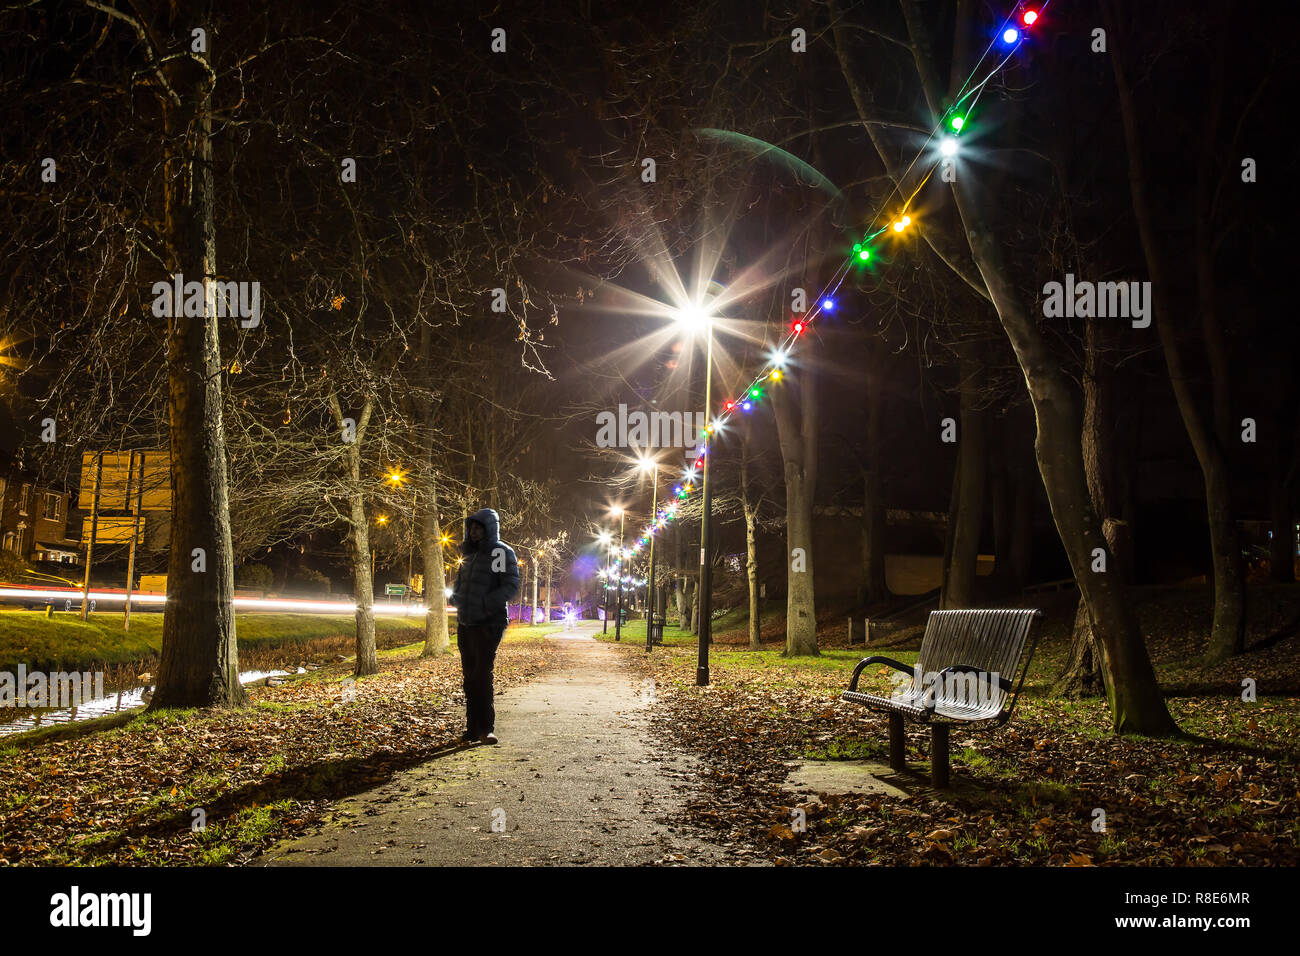 Landscape shot of solitary figure, stood on path, in public park at night time during festive period. Outdoor Christmas lights create starburst effect. - Stock Image